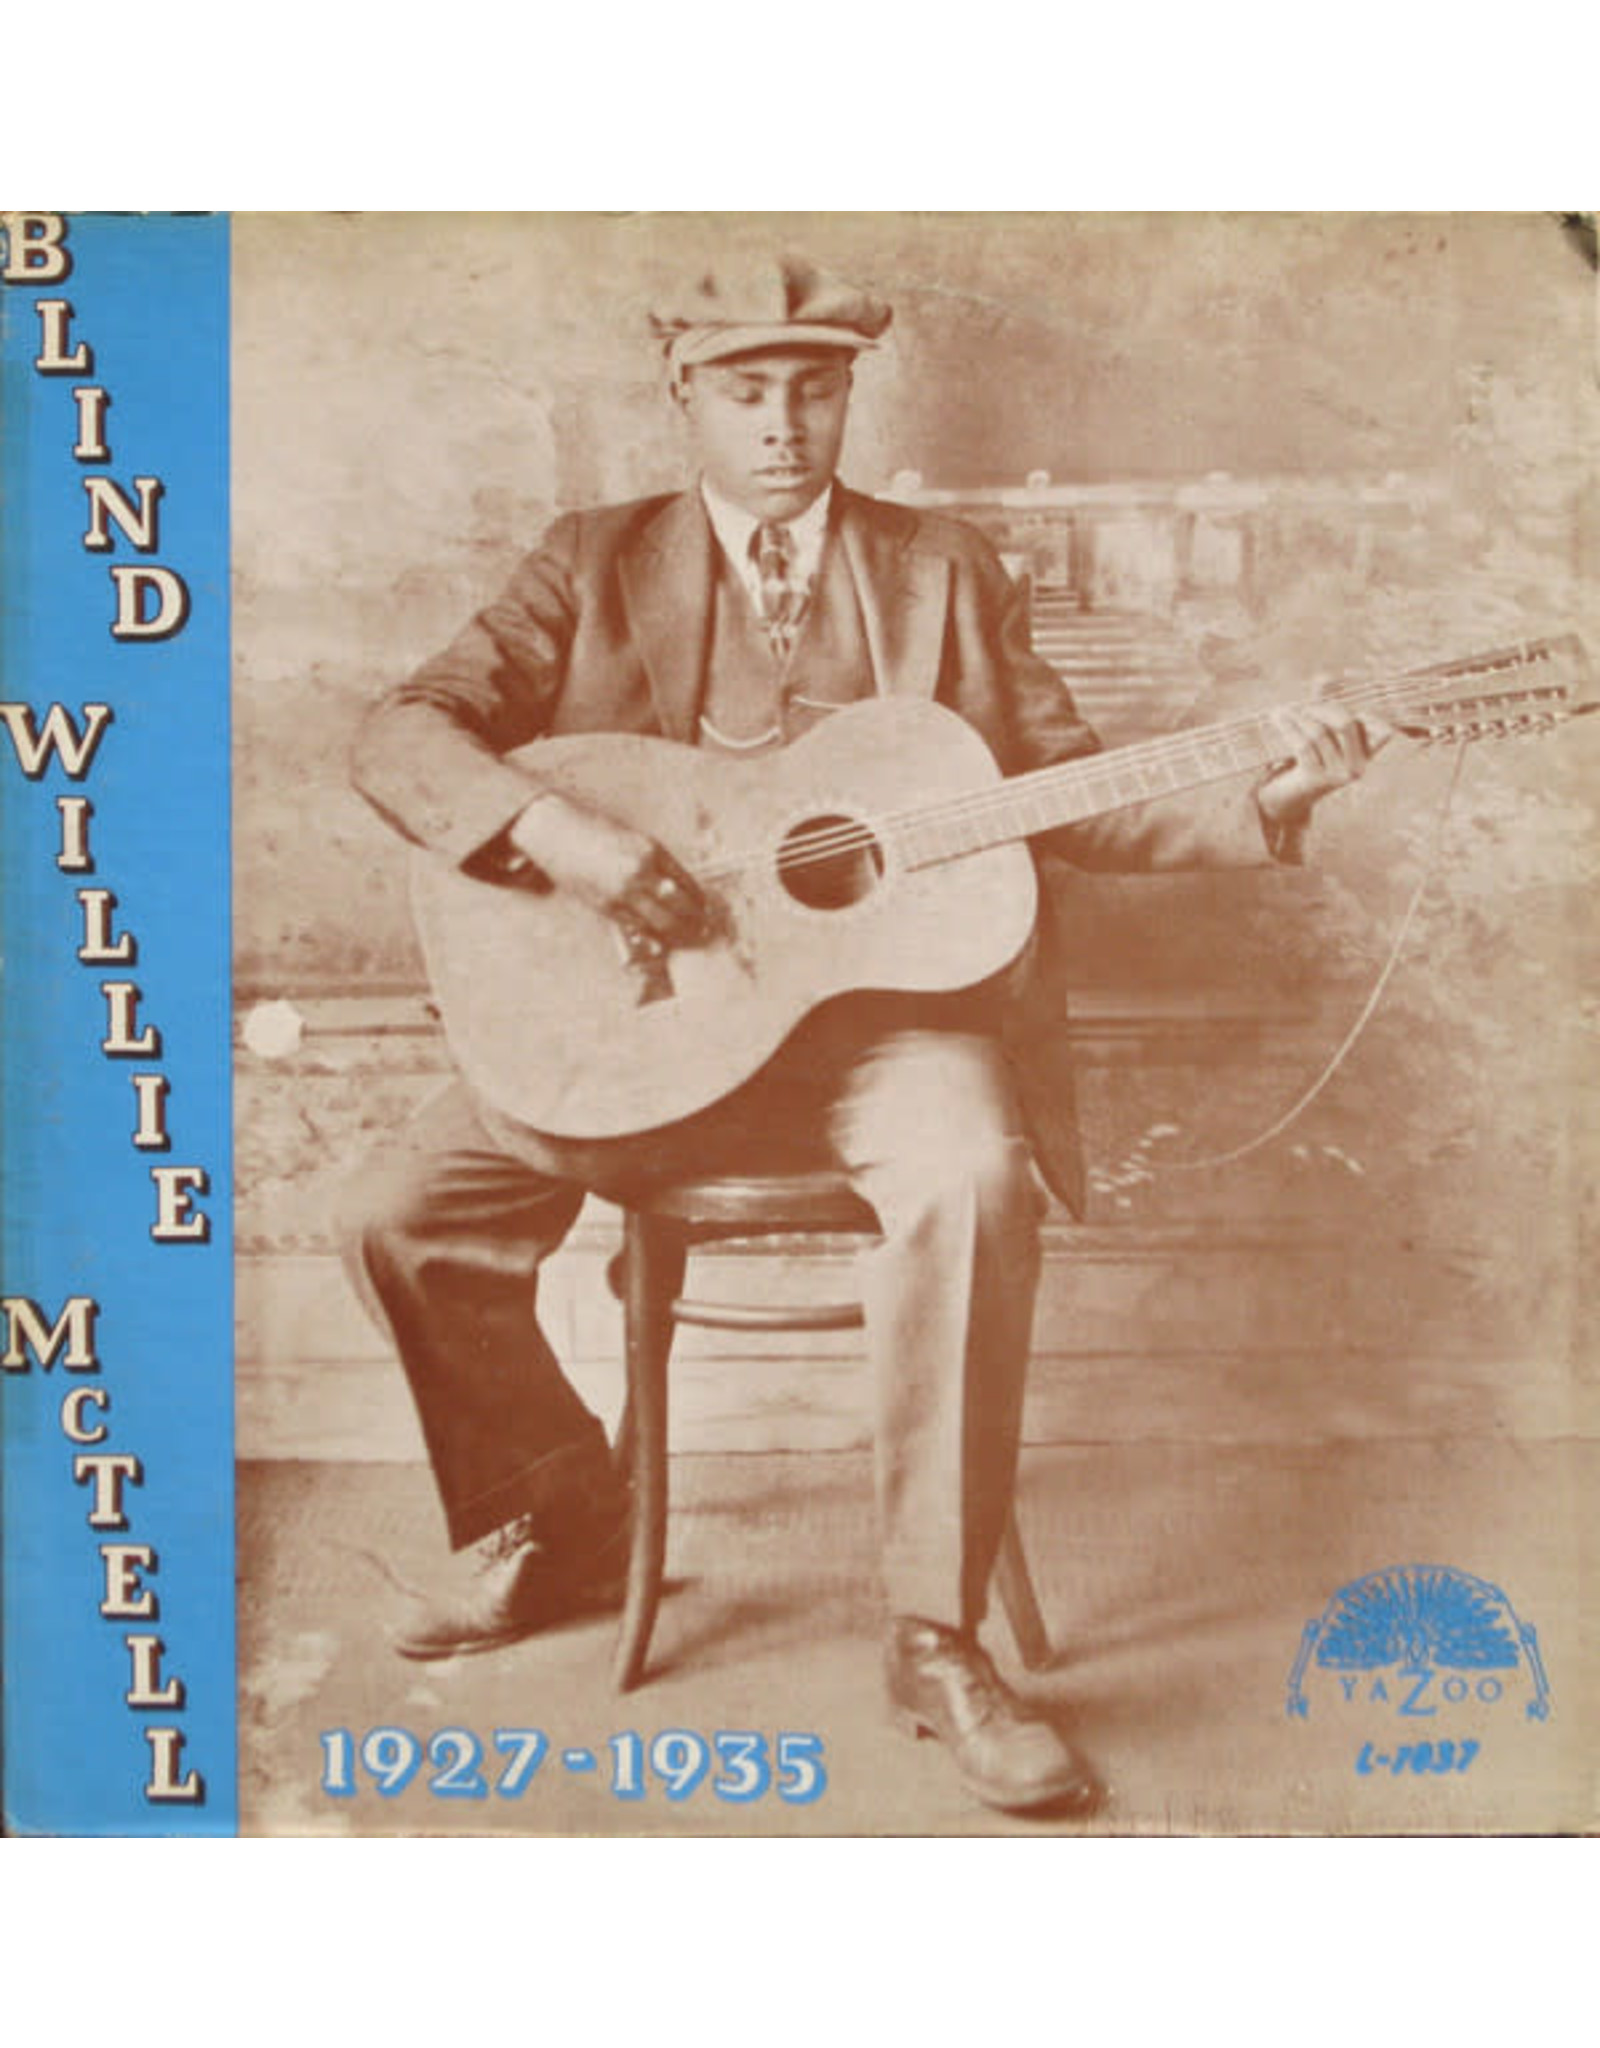 New Vinyl Blind Willie McTell - 1927-1935 LP